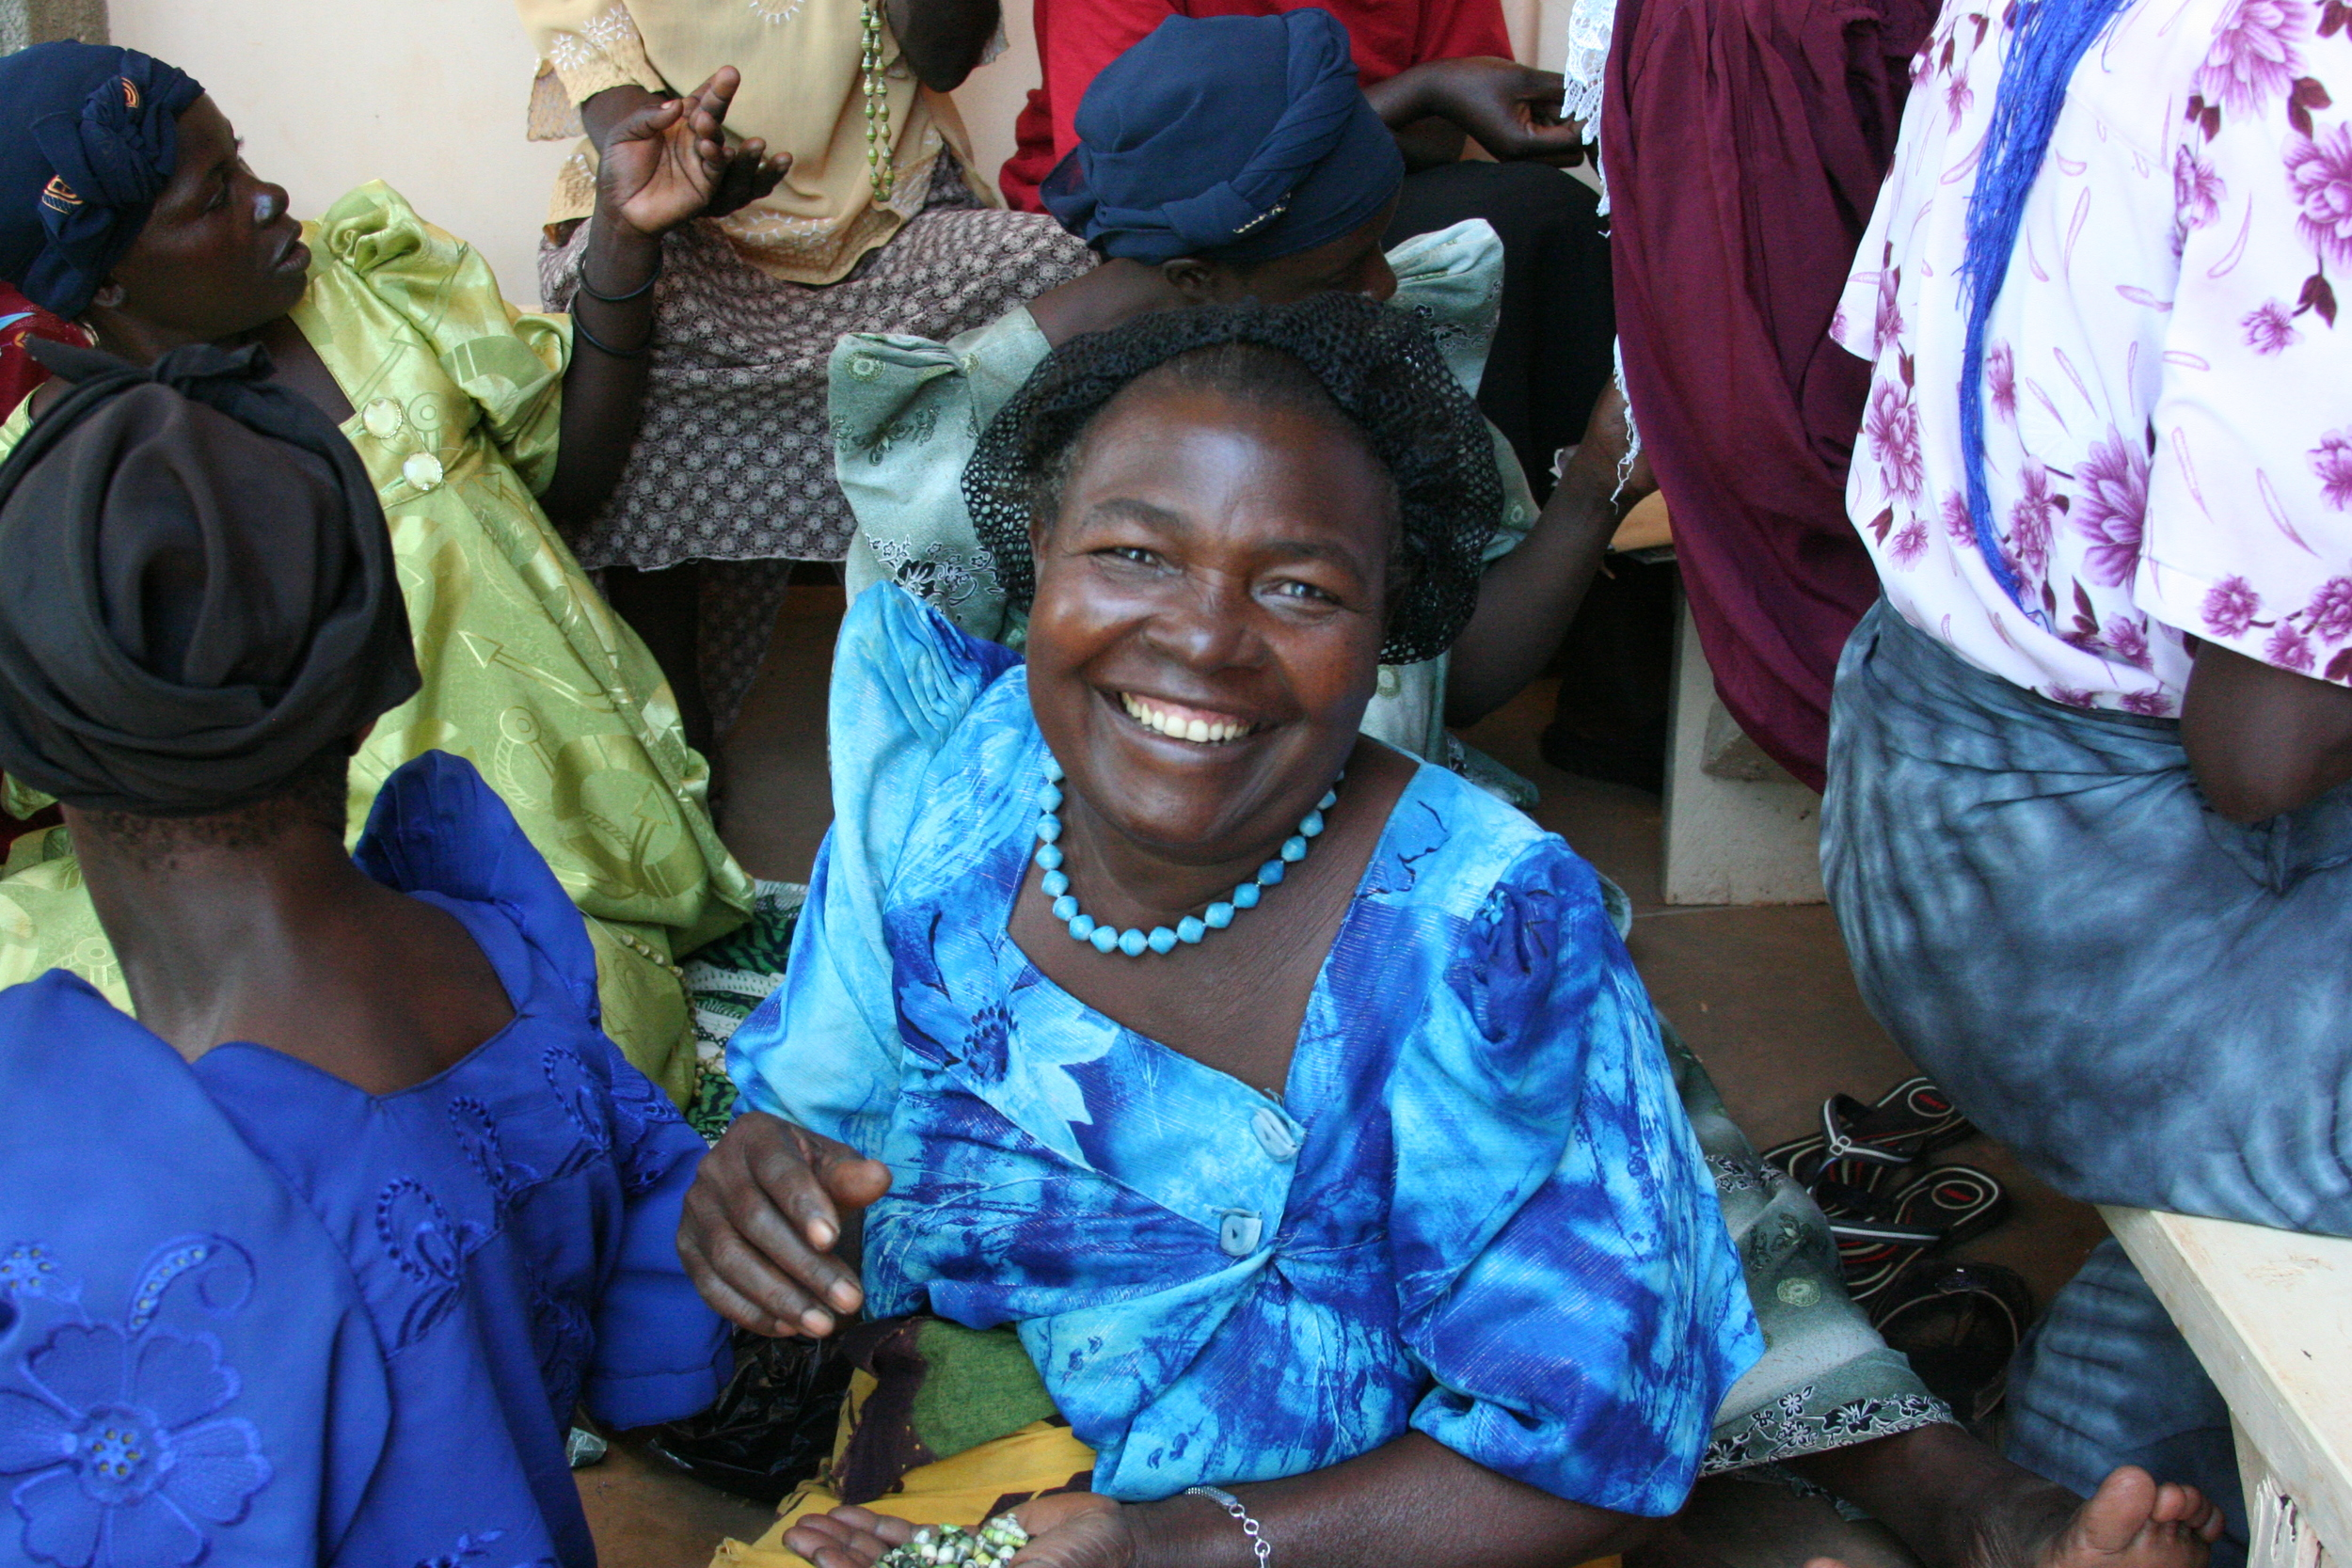 Widows' Jewelry Project; Creating hope from recycled paper